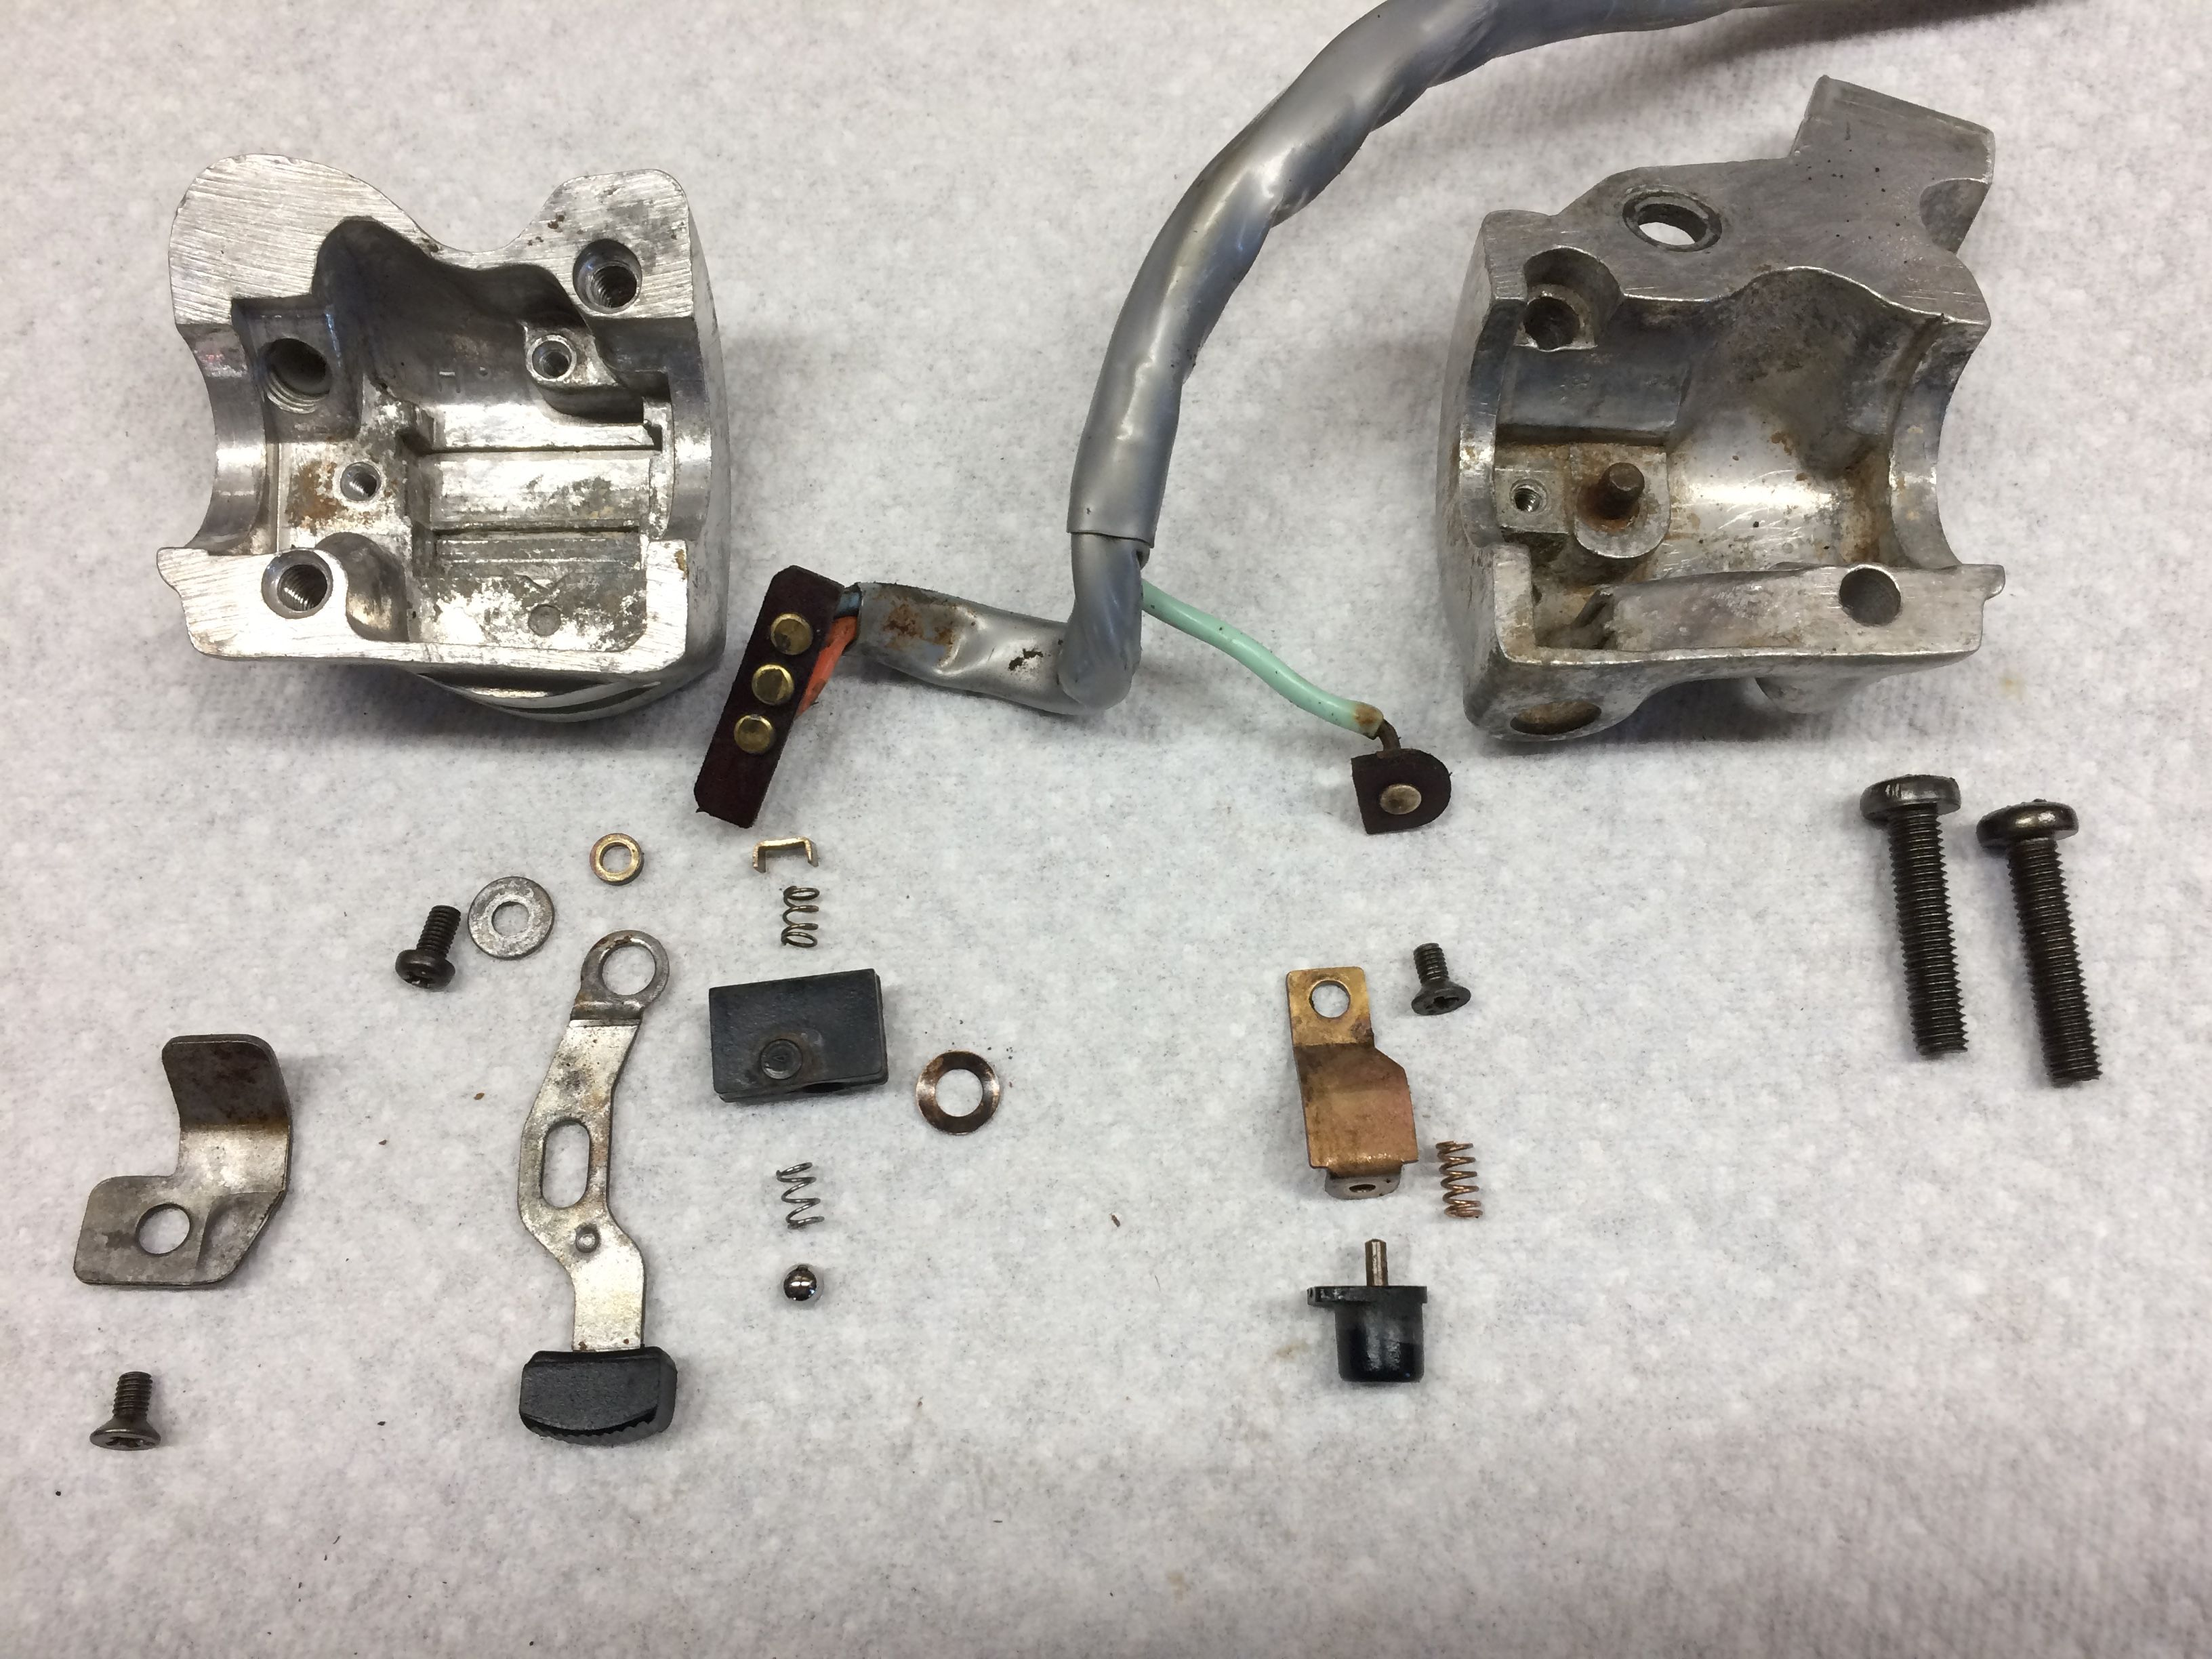 small resolution of reassembling a honda ct90 horn and turn signal switch assembly may look difficult but it really isn t all that bad and i have provided detailed